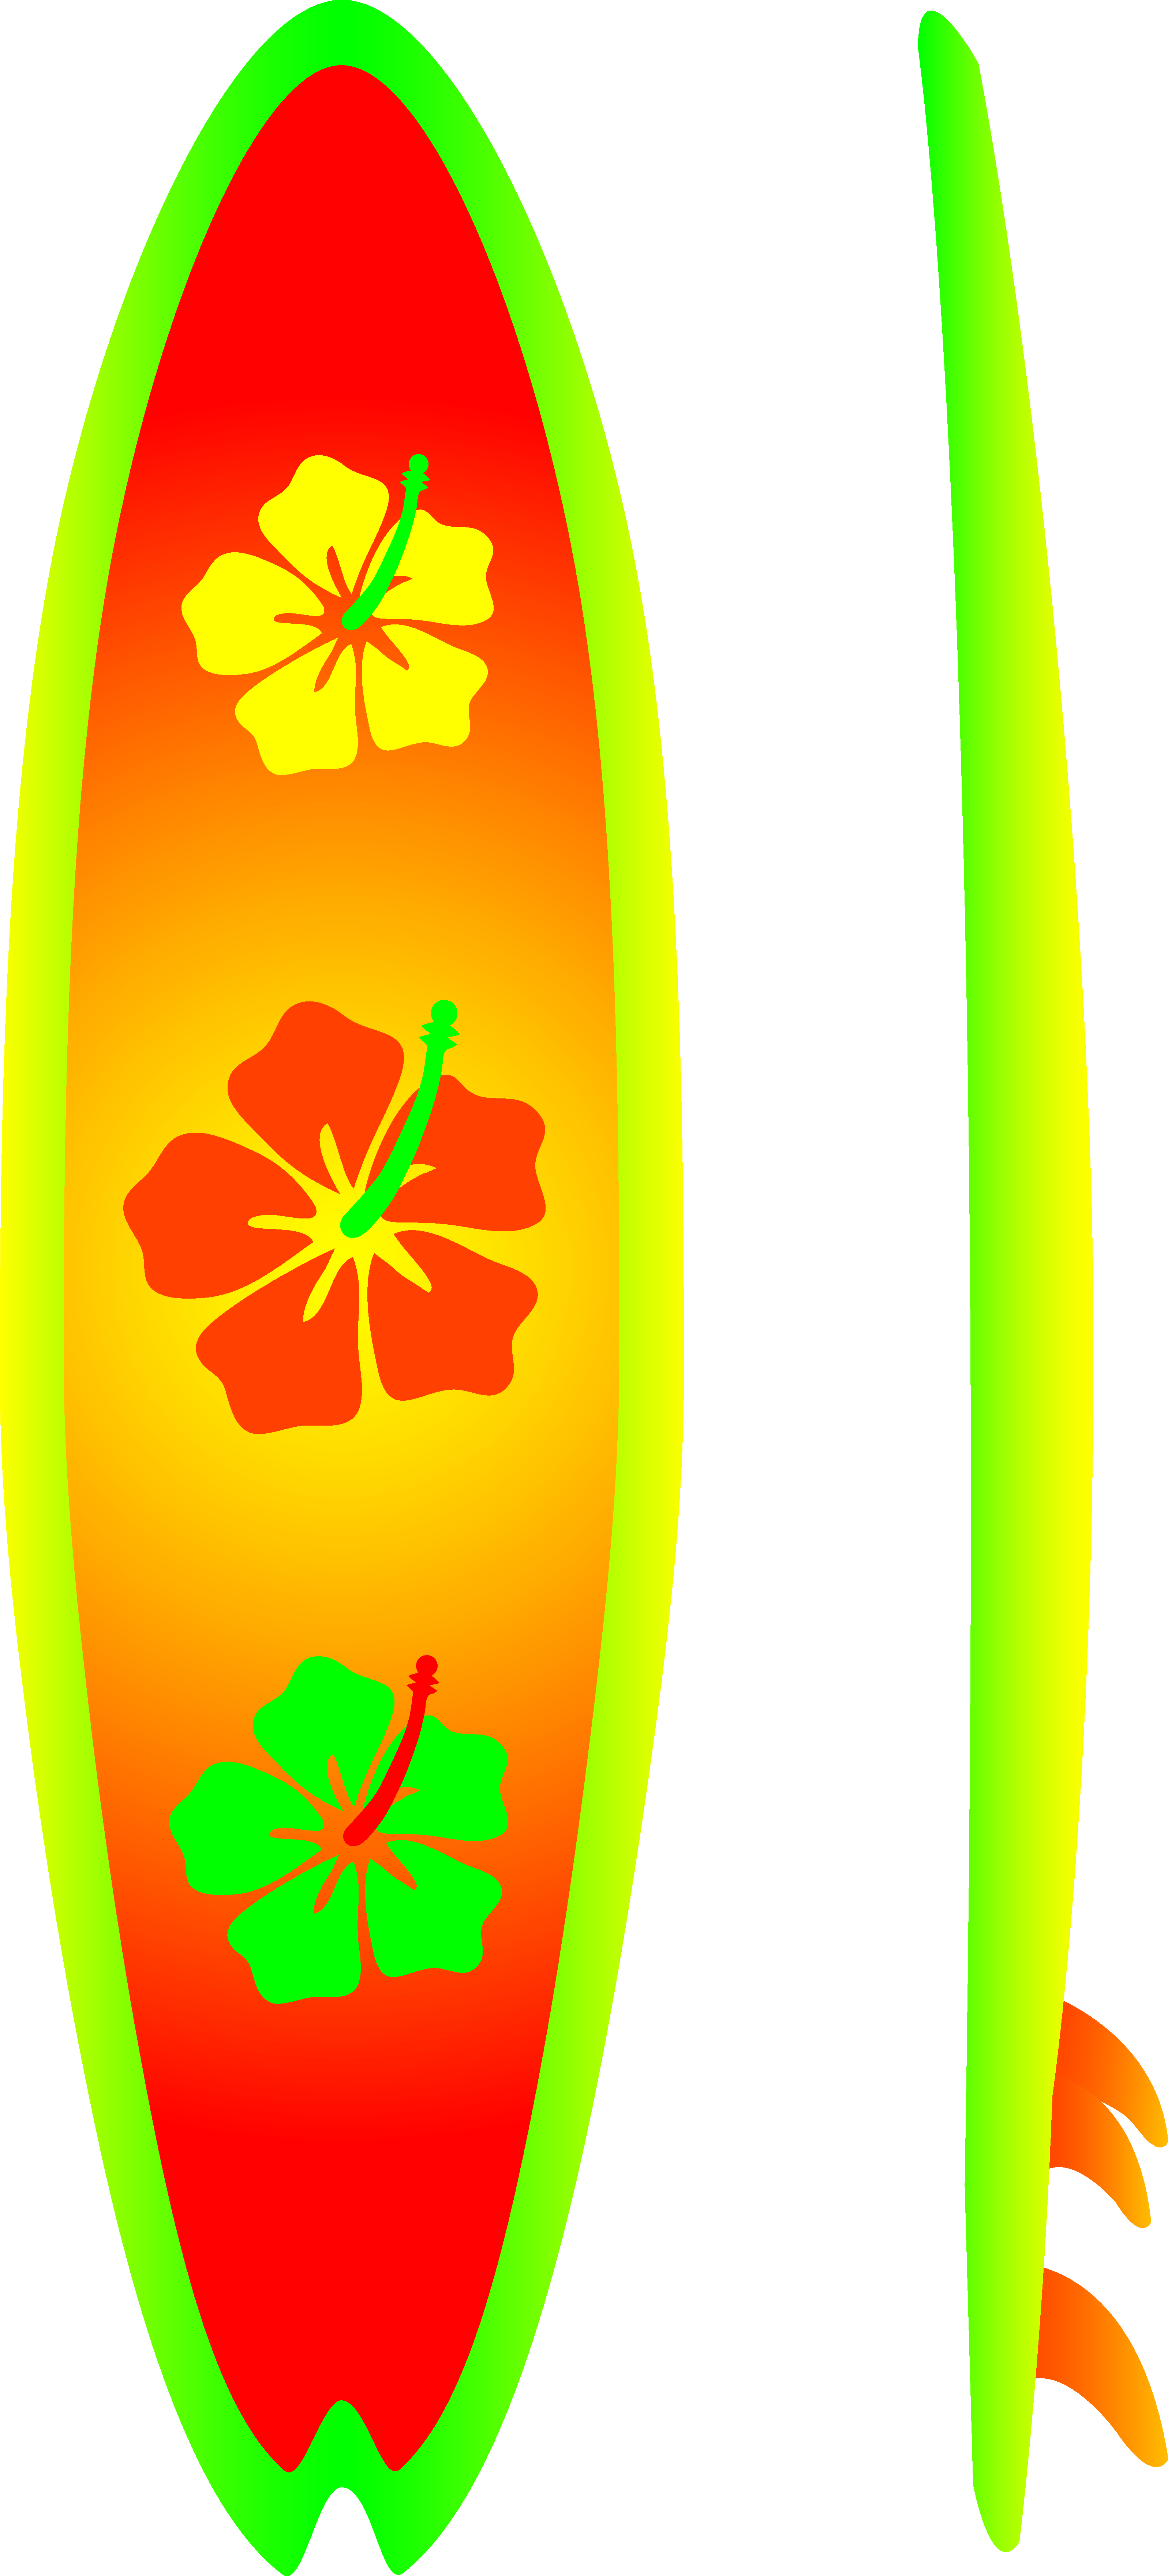 Surfboard Clipart - Cliparts.co - 435.1KB